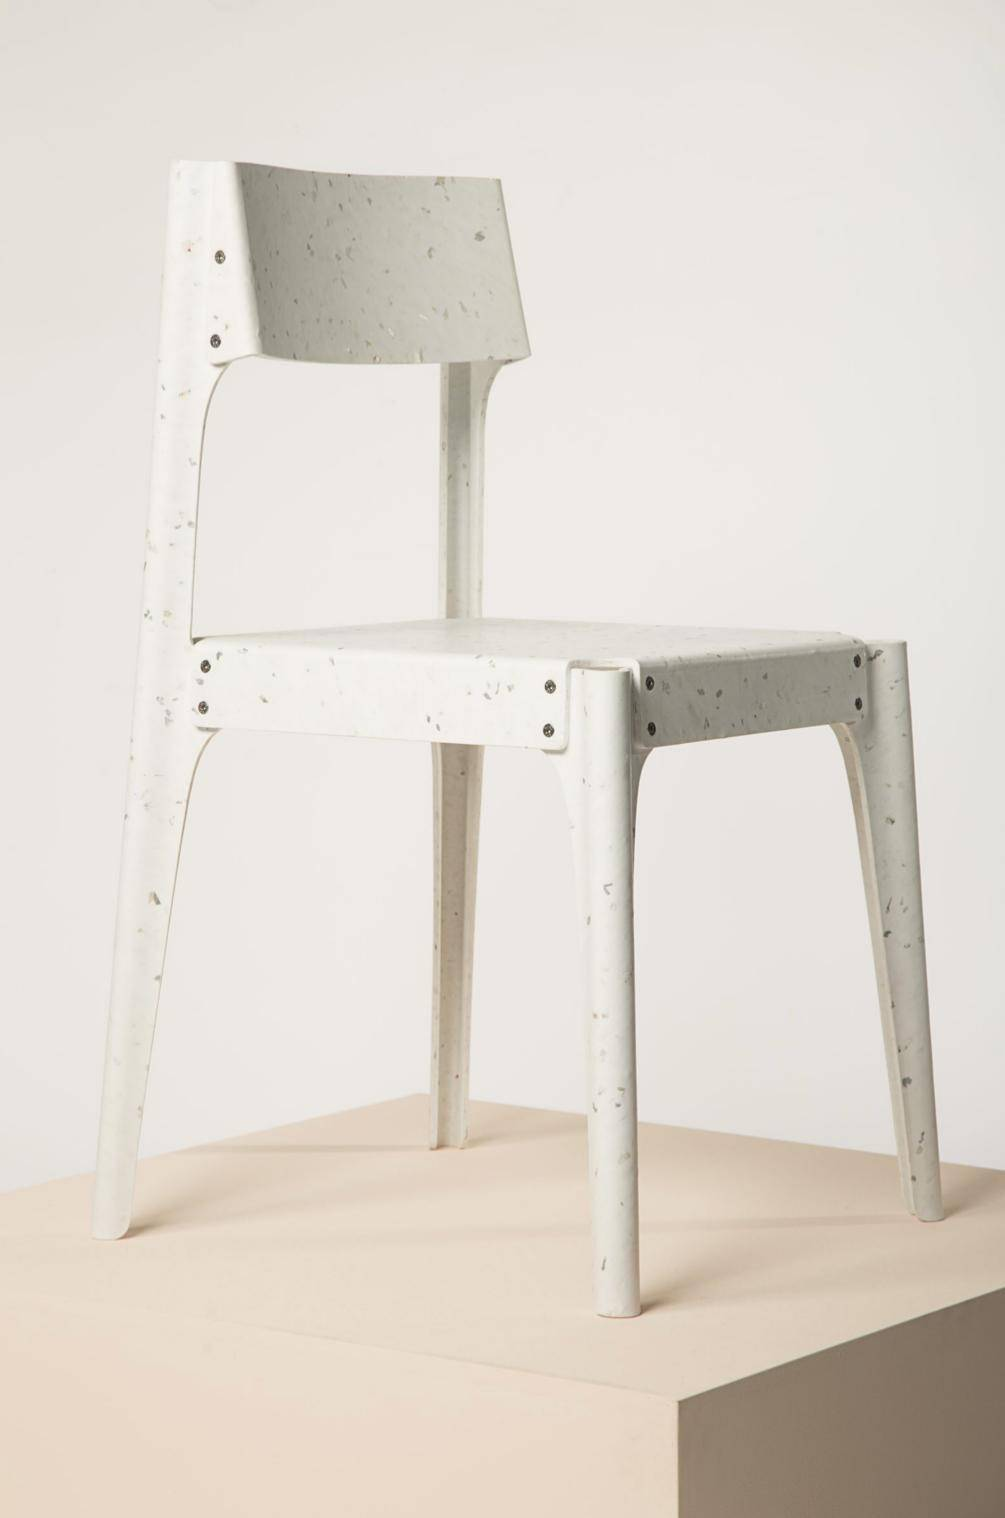 Alex Schul, Substantial Chair